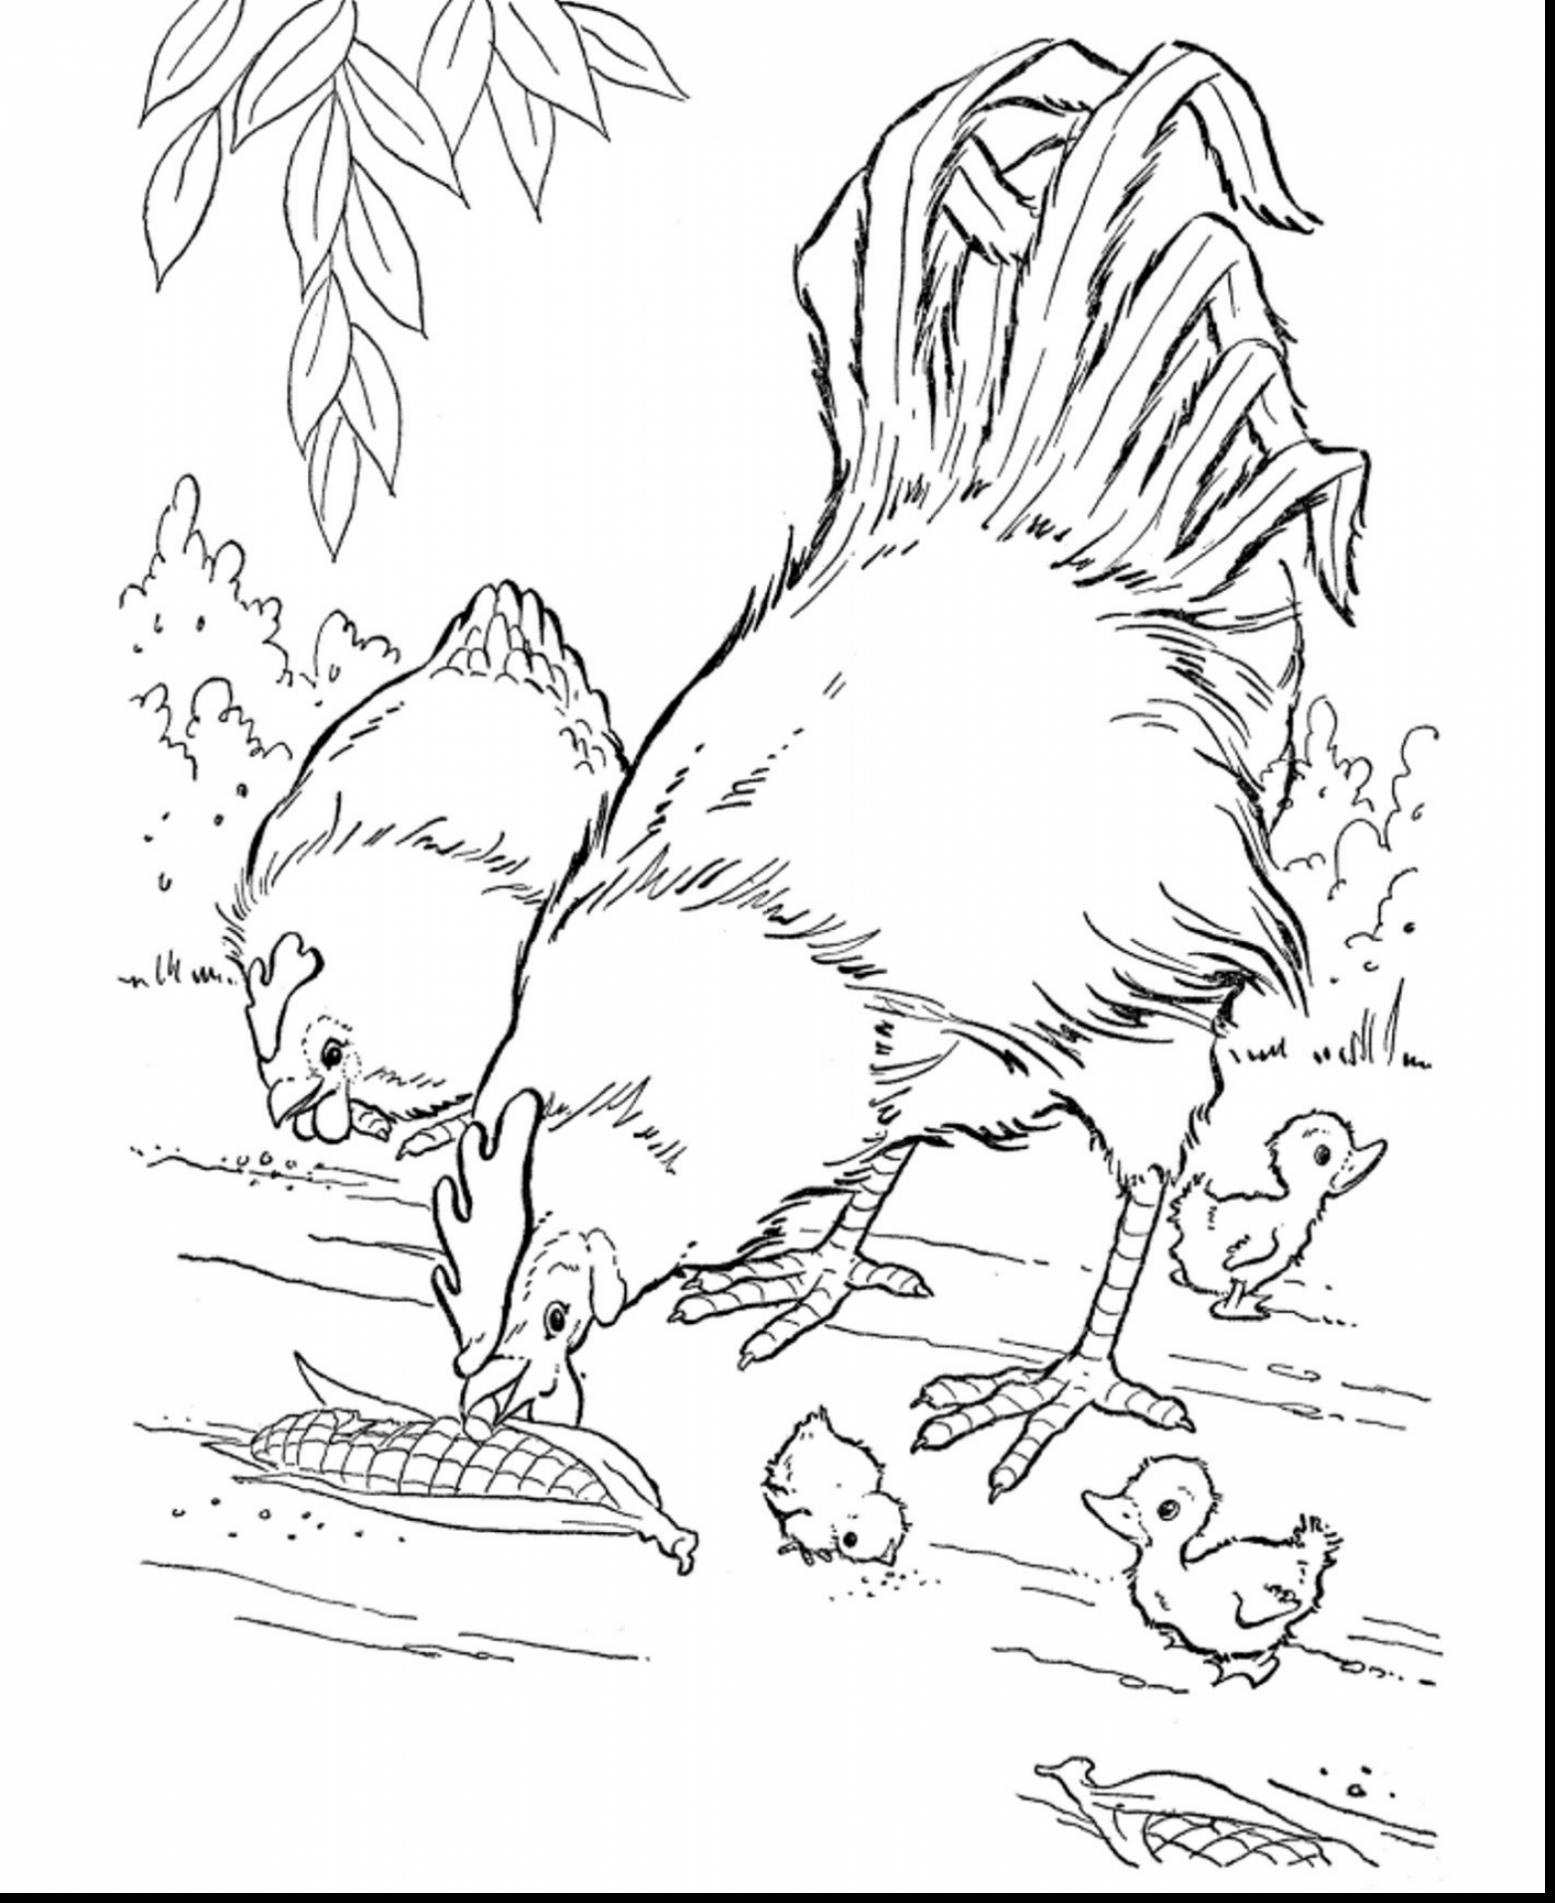 Farm Coloring Pages For Adults at GetDrawings.com | Free for ...